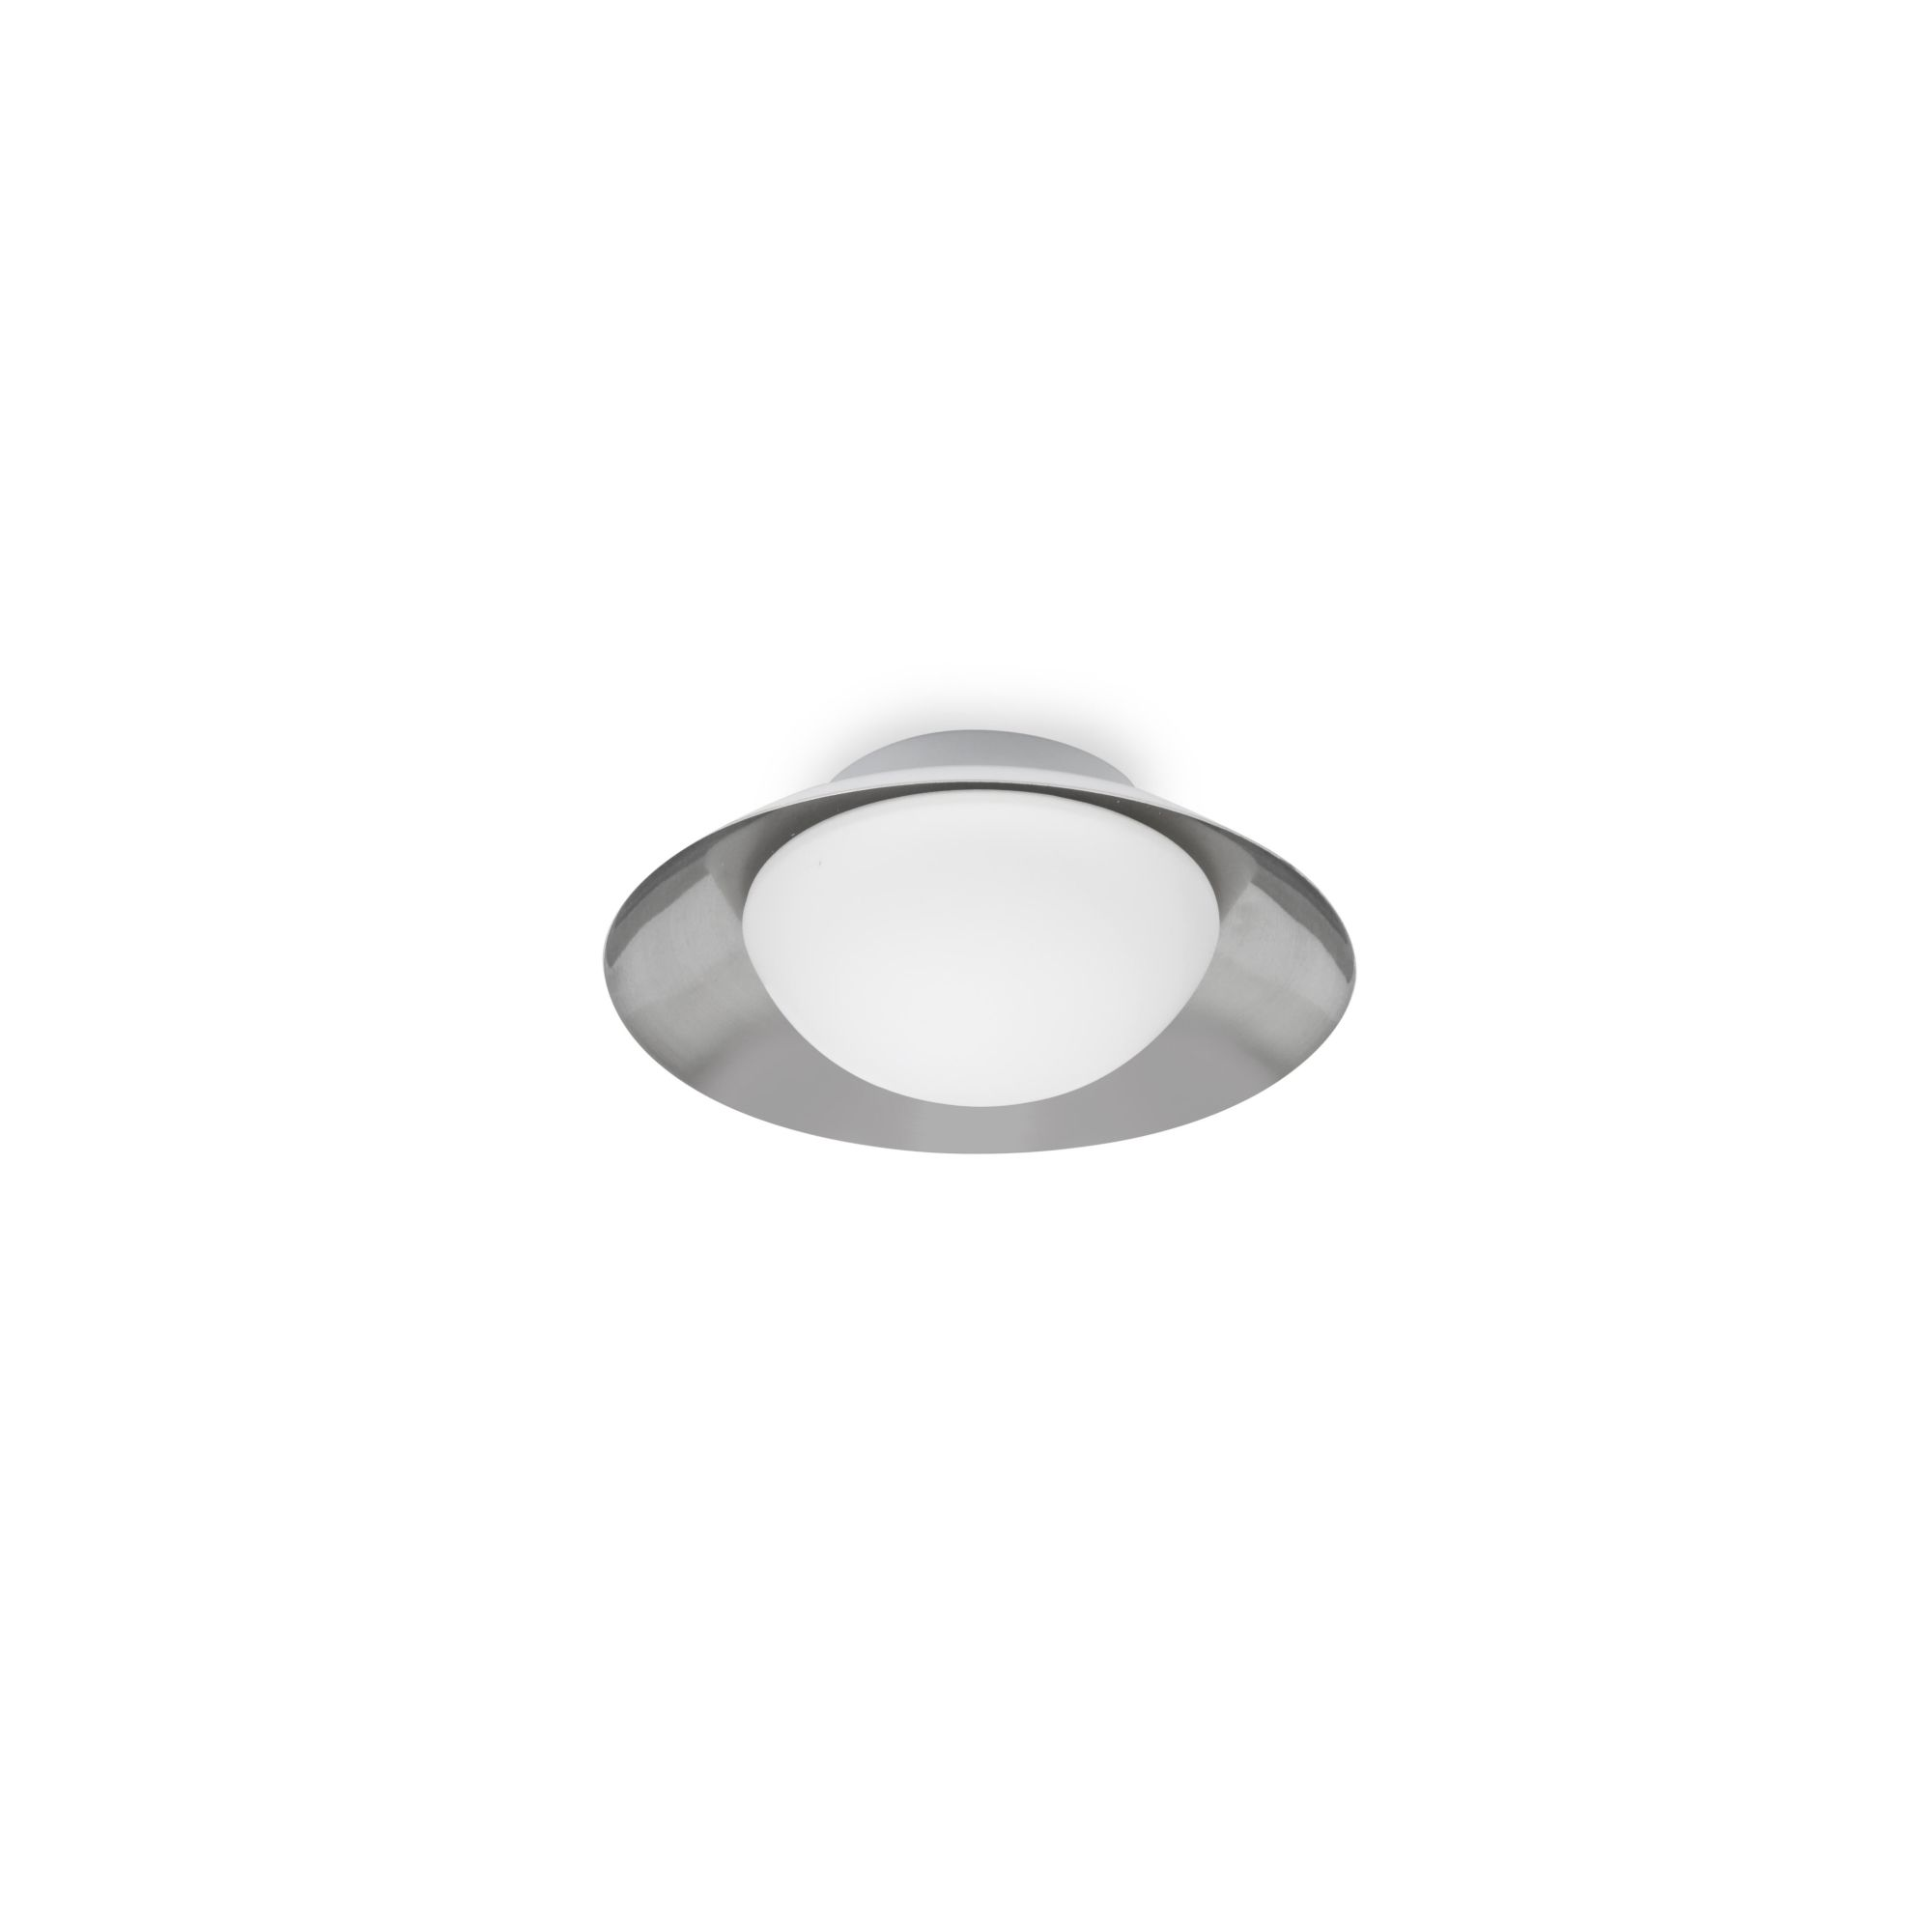 SIDE PLAFON Ø200 BLANCO/NIQUEL MATE G9 LED 28W